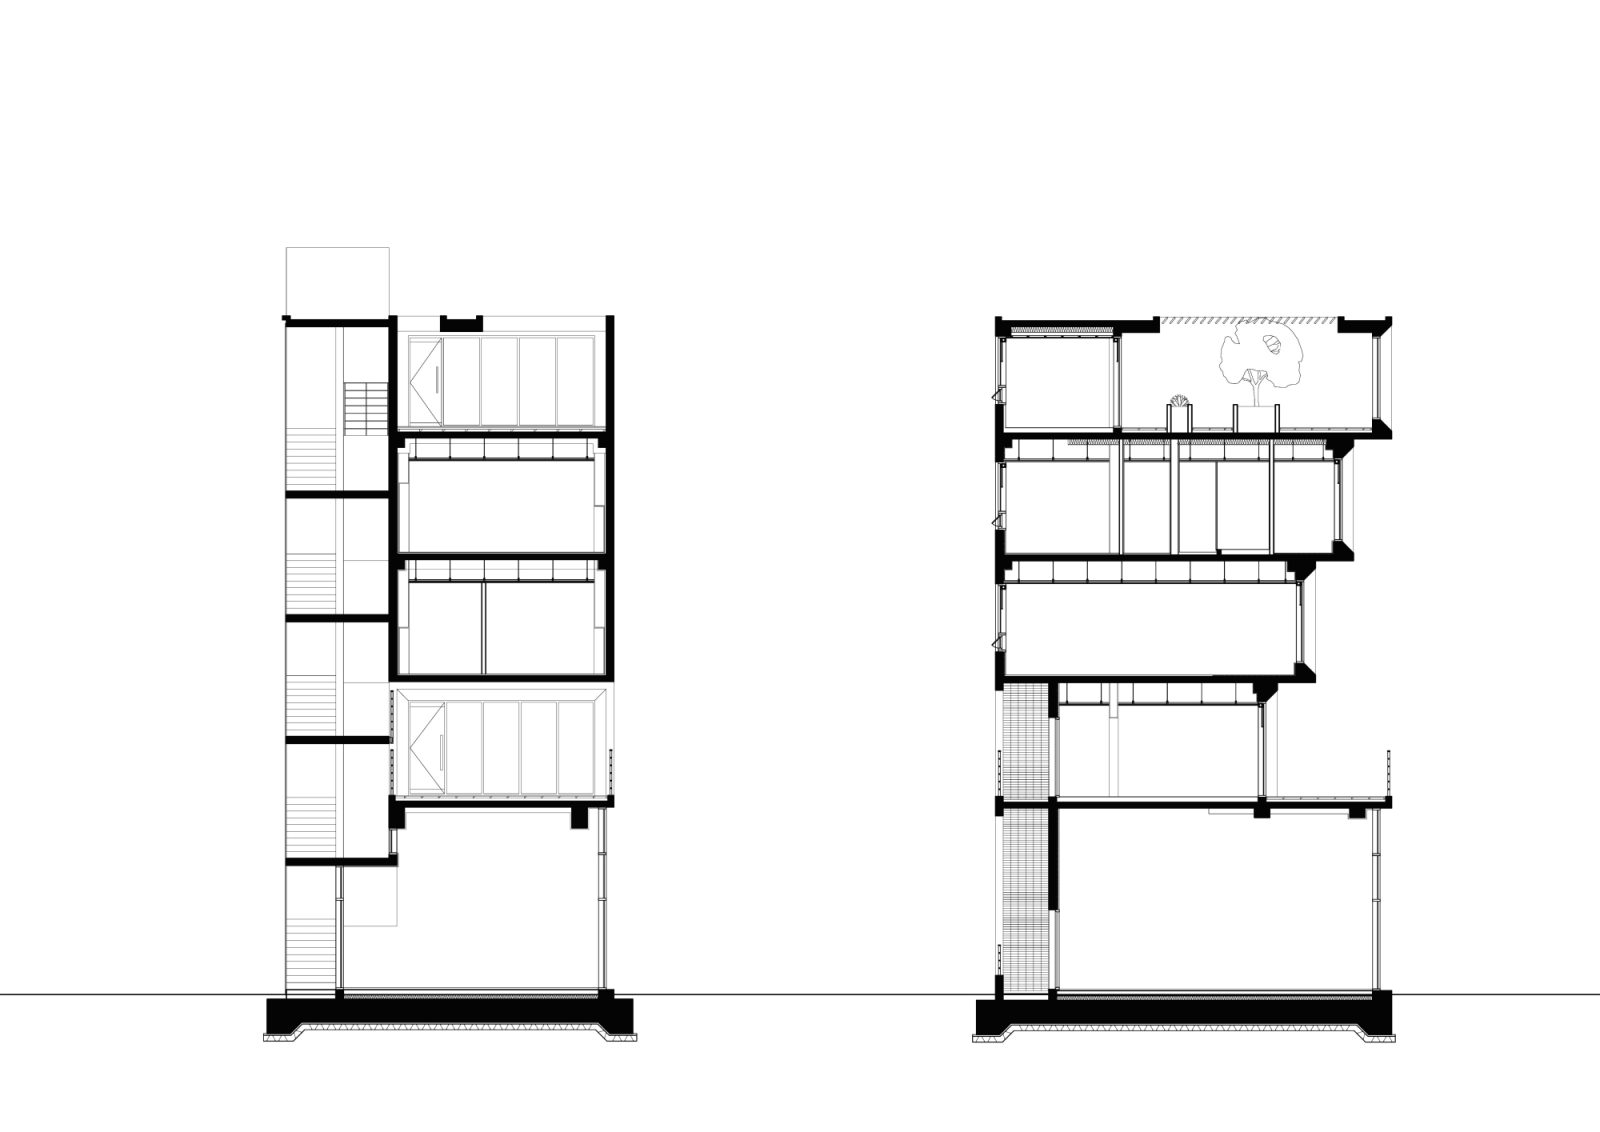 Floor area ratio game by on architecture 20 for Floor area ratio